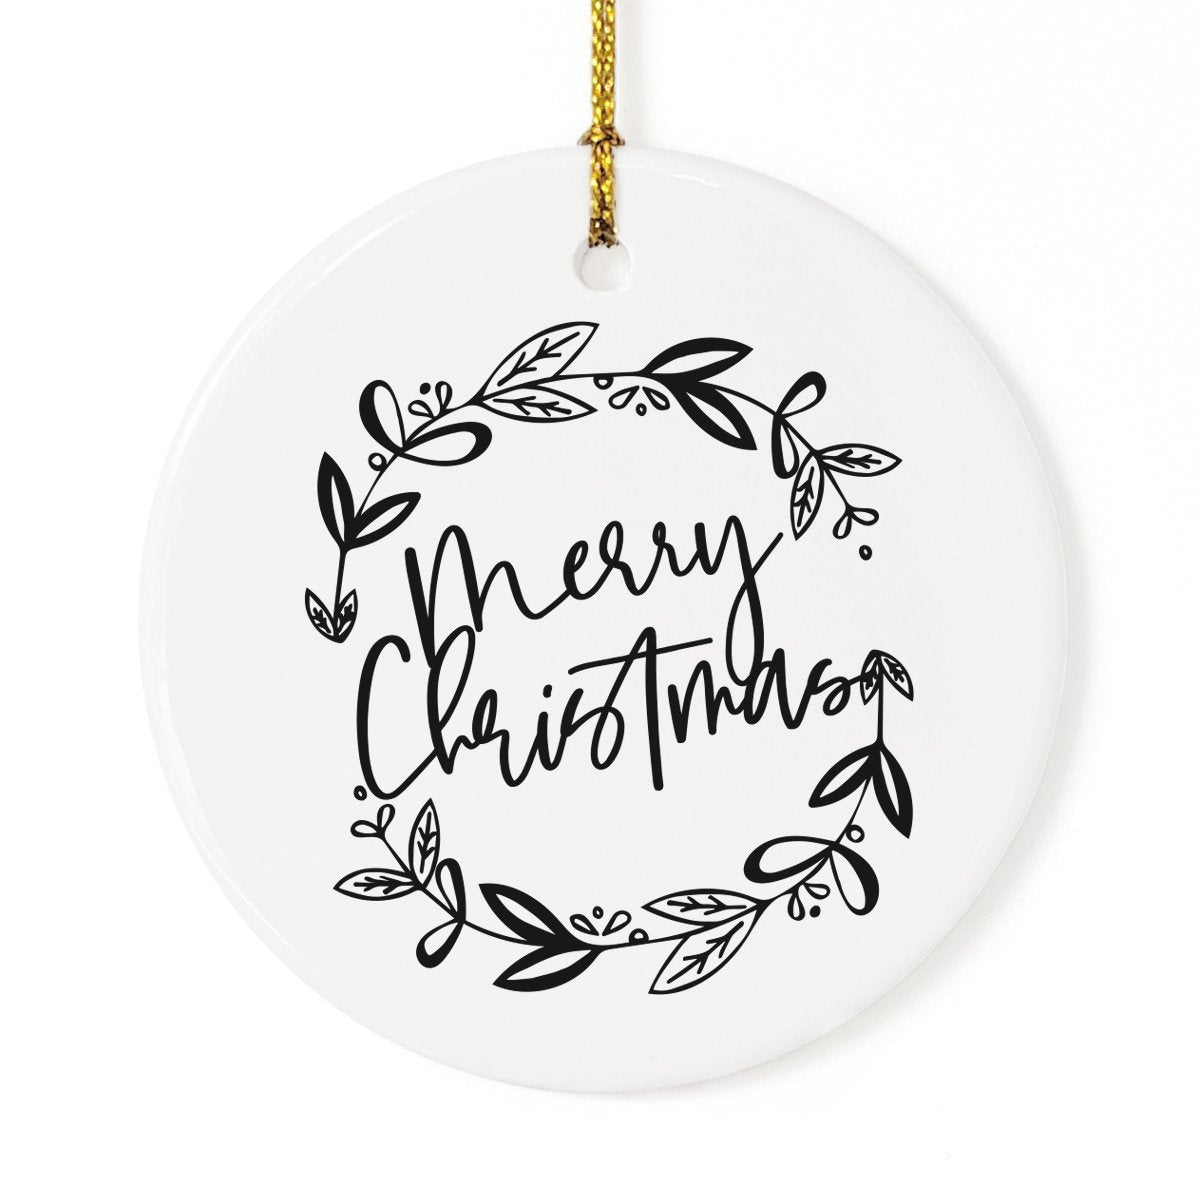 Merry Christmas with Wreath Christmas Ornament